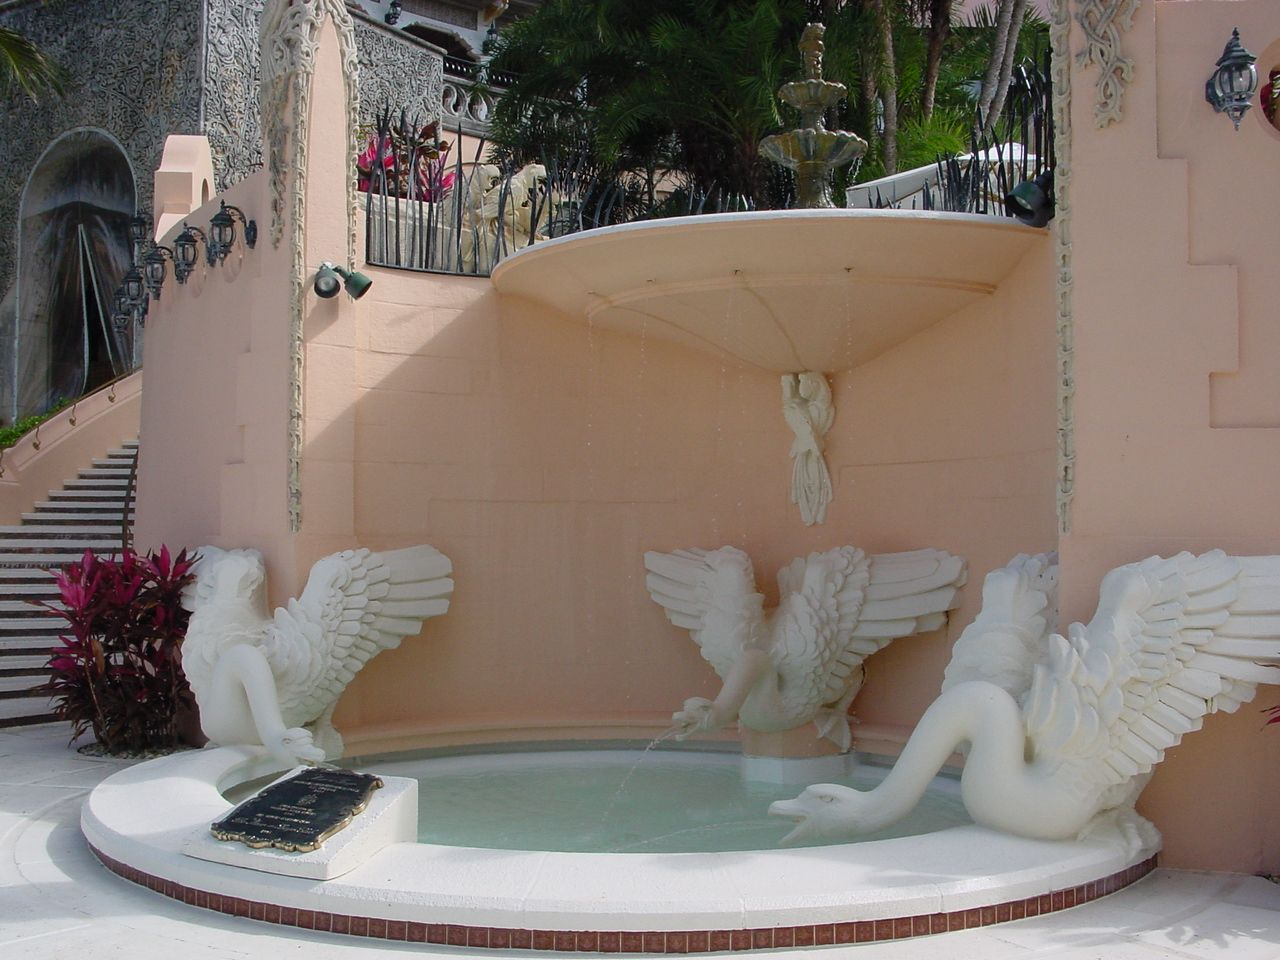 Swans At Base Of Stairways To Pool Deck, Mar A Lago, Palm